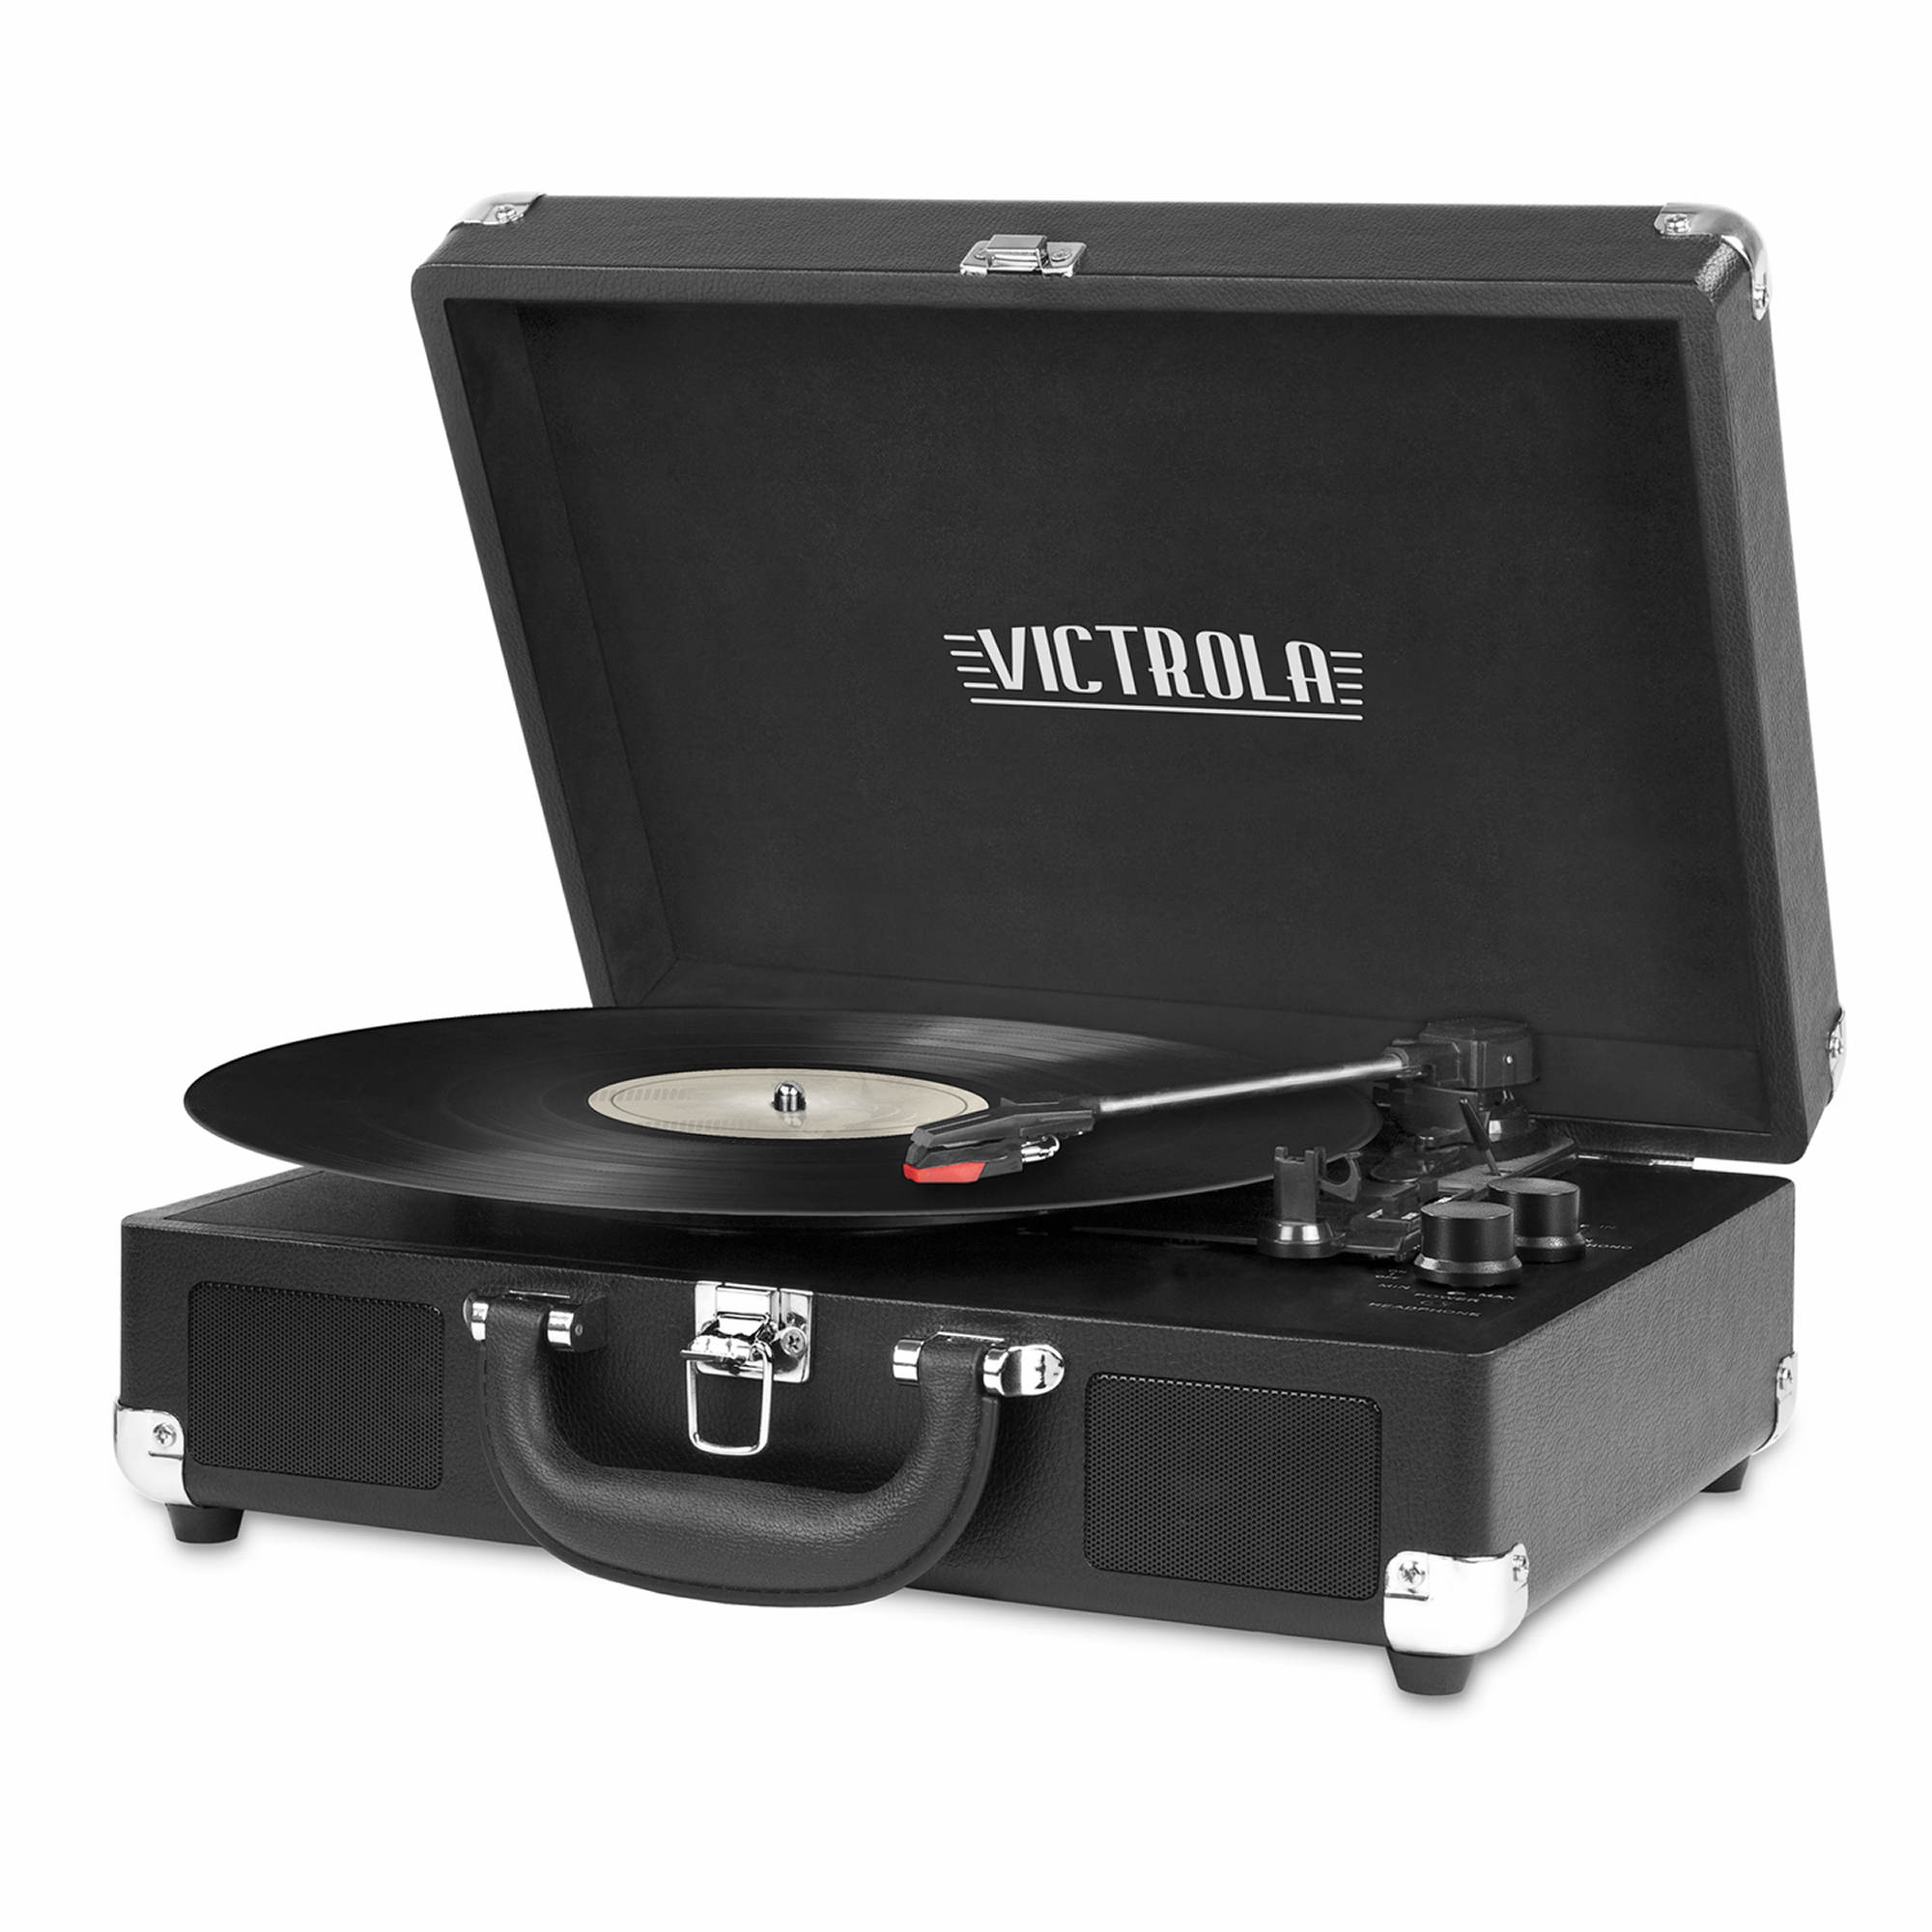 Victrola Suitcase Turntable with Bluetooth